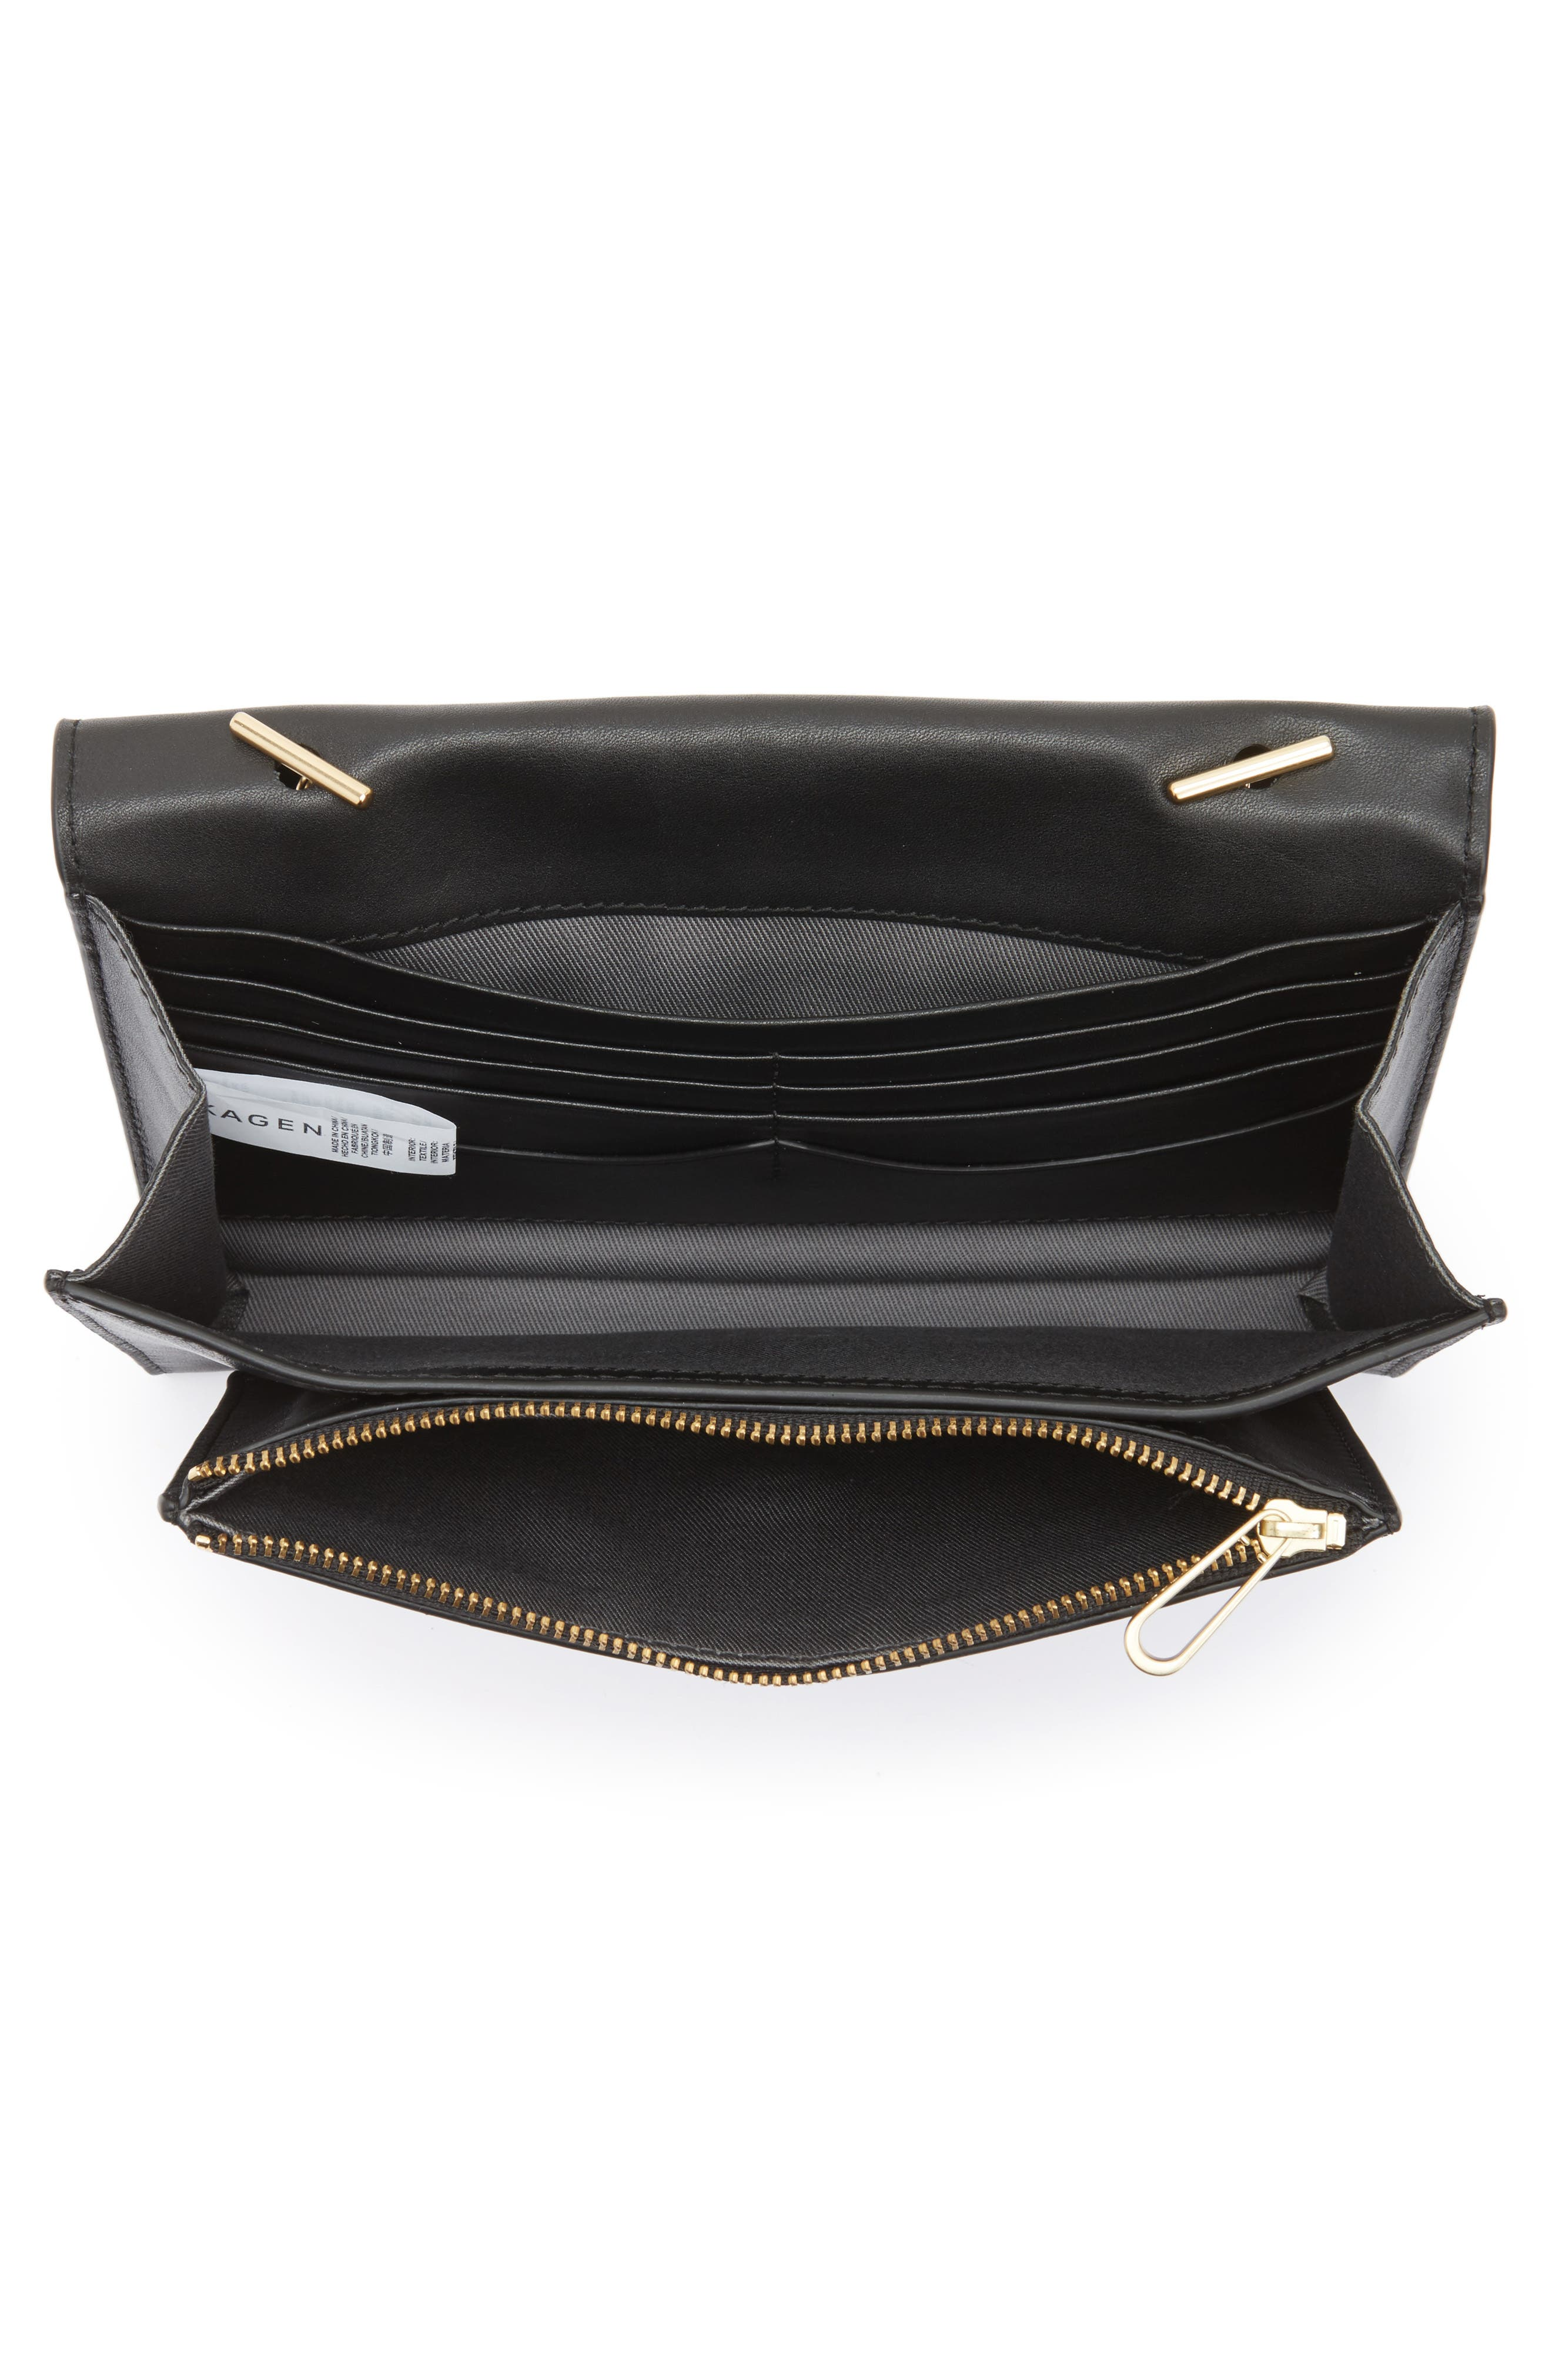 Alternate Image 3  - Skagen Eryka Leather Envelope Clutch with Detachable Chain